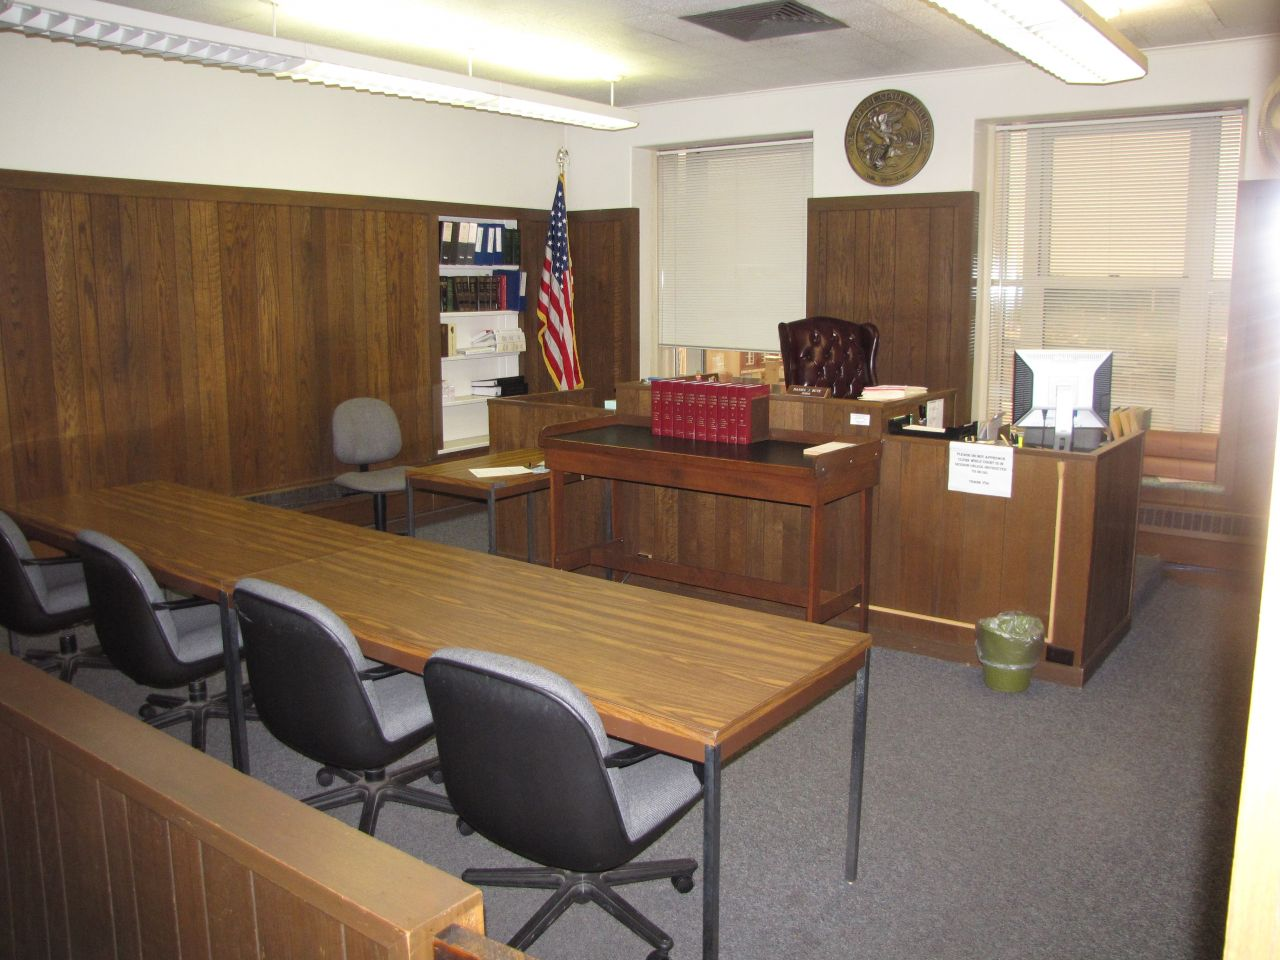 Smaller courtroom